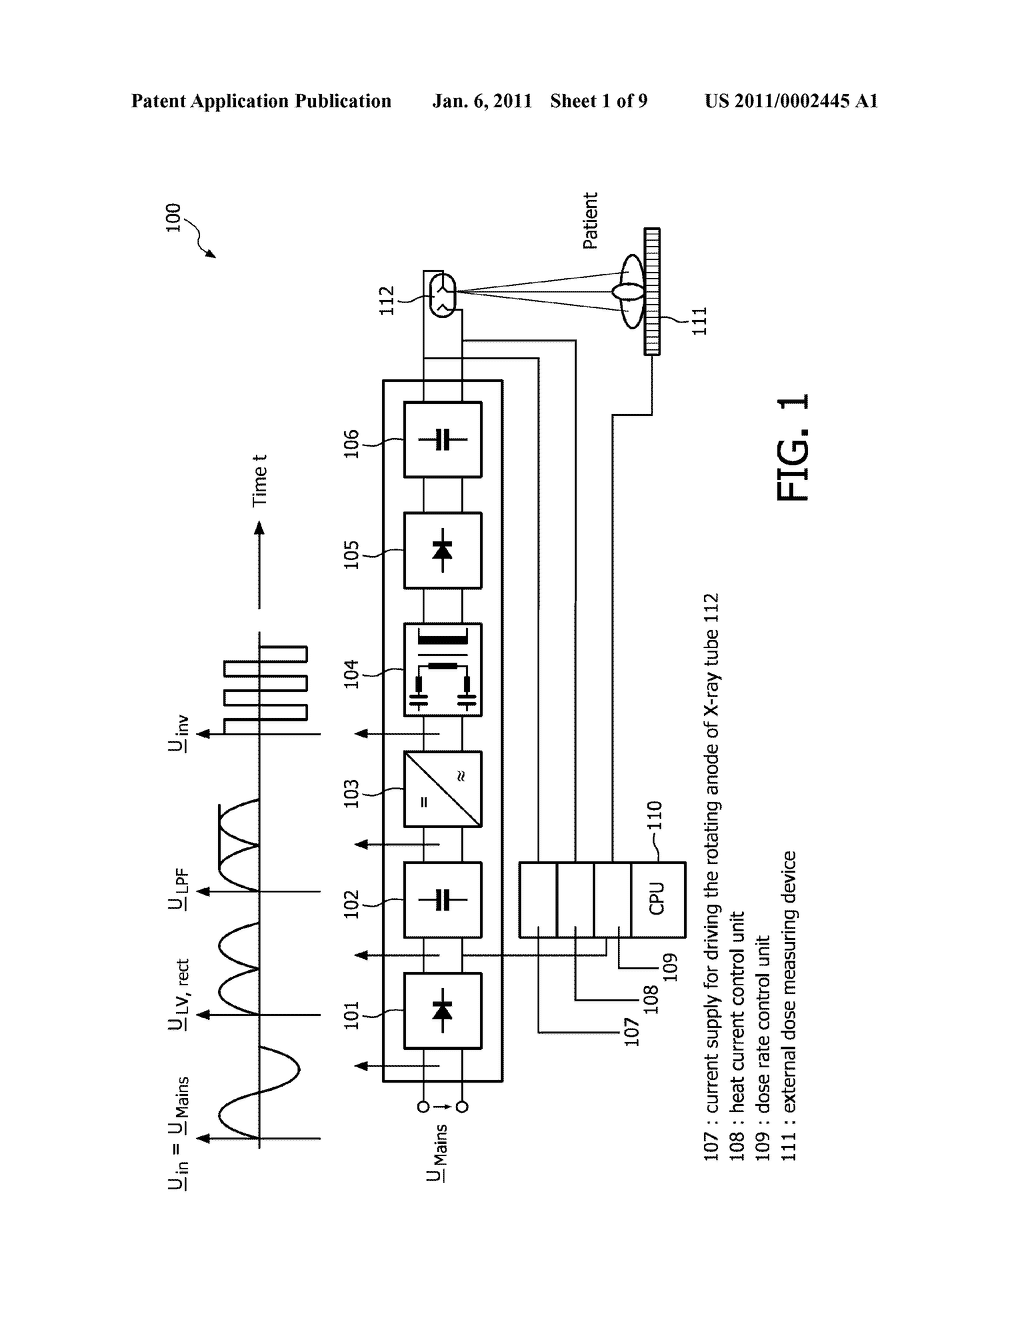 ... POWER CONVERTER CIRCUIT, IN PARTICULAR A DC/DC CONVERTER FOR USE IN A  HIGH-VOLTAGE GENERATOR CIRCUITRY OF A MODERN COMPUTED TOMOGRAPHY DEVICE OR X -RAY ...